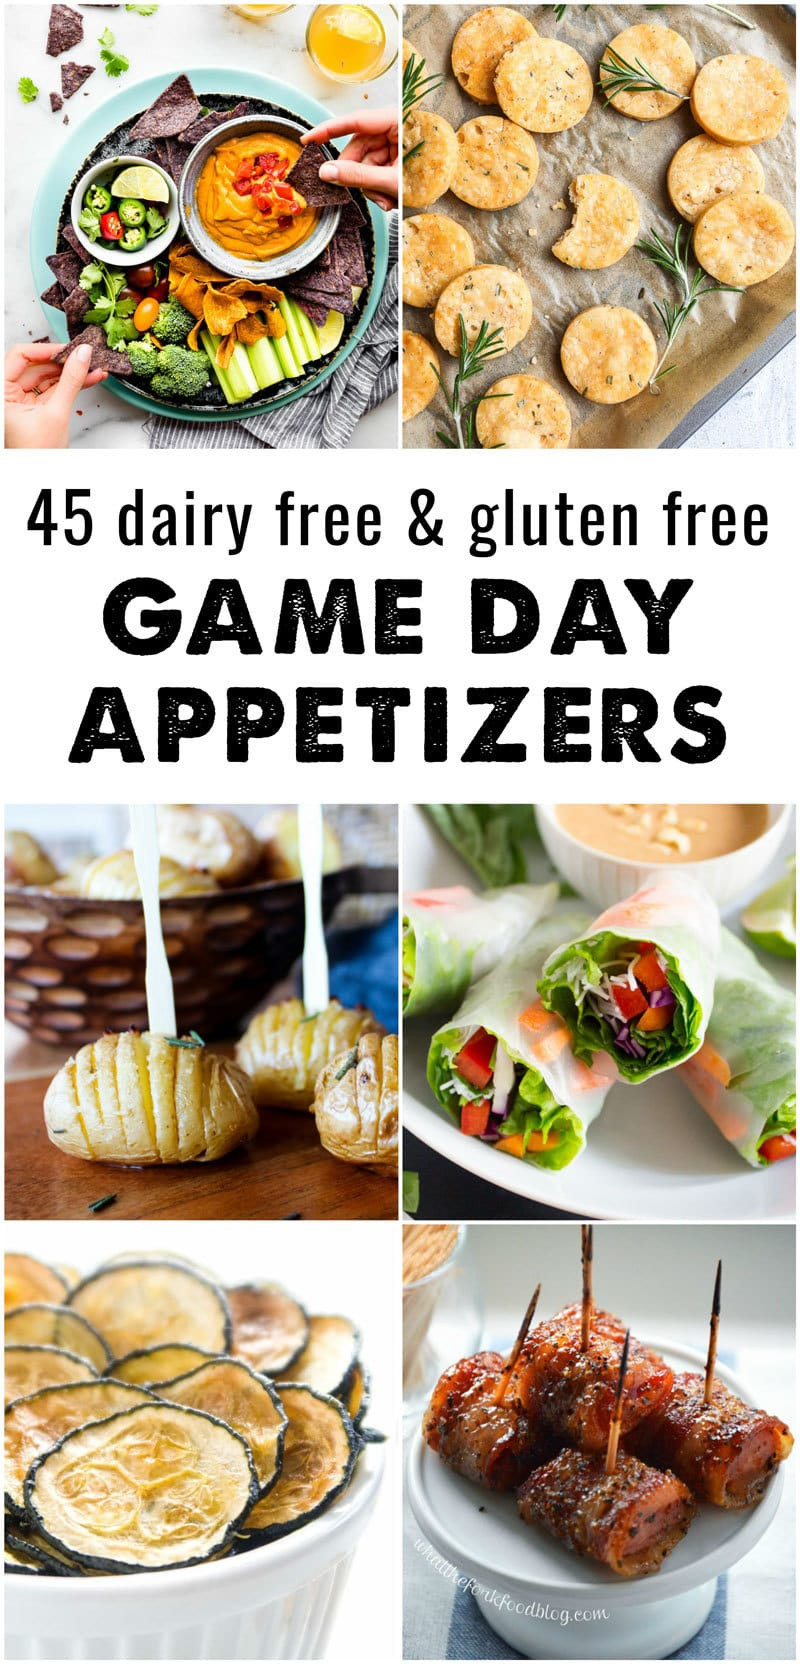 Gluten Free Dairy Free Appetizers  45 Dairy Free and Gluten Free Appetizers • The Fit Cookie